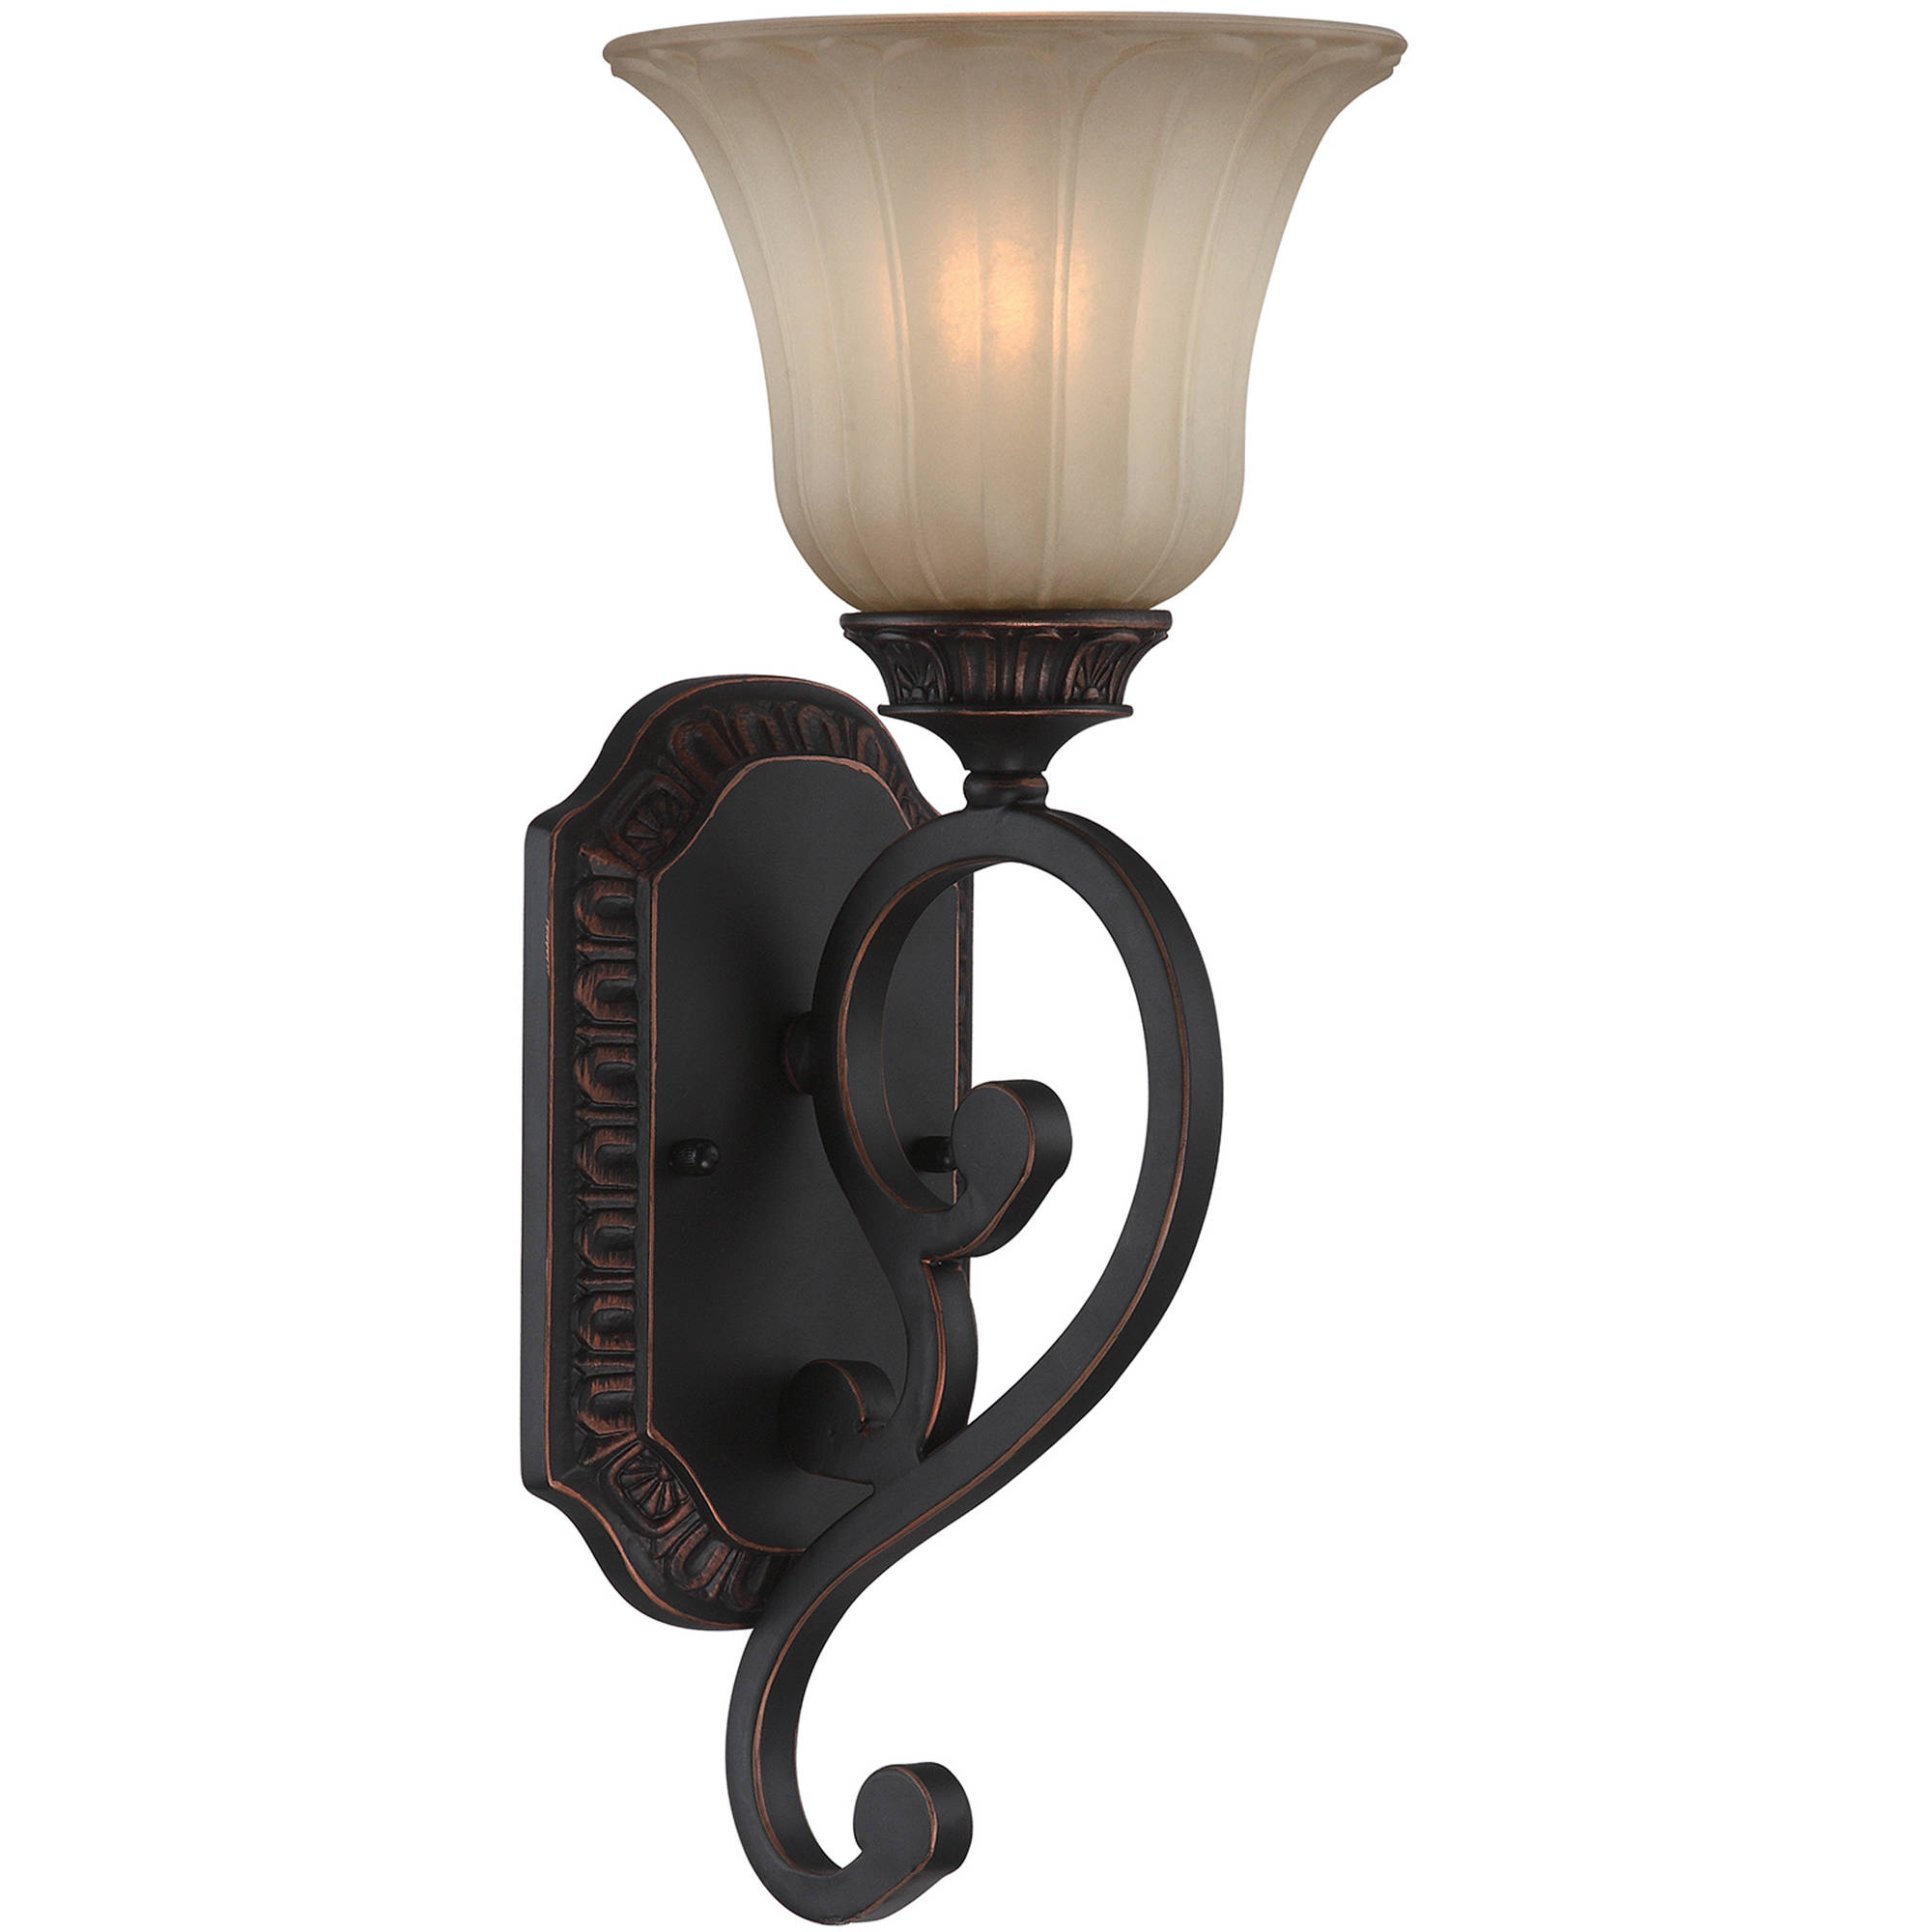 Lite Source Crescentia 1-Light Wall Lamp, Antique Bronze Finish with Light Amber Glass Shade by Lite Source